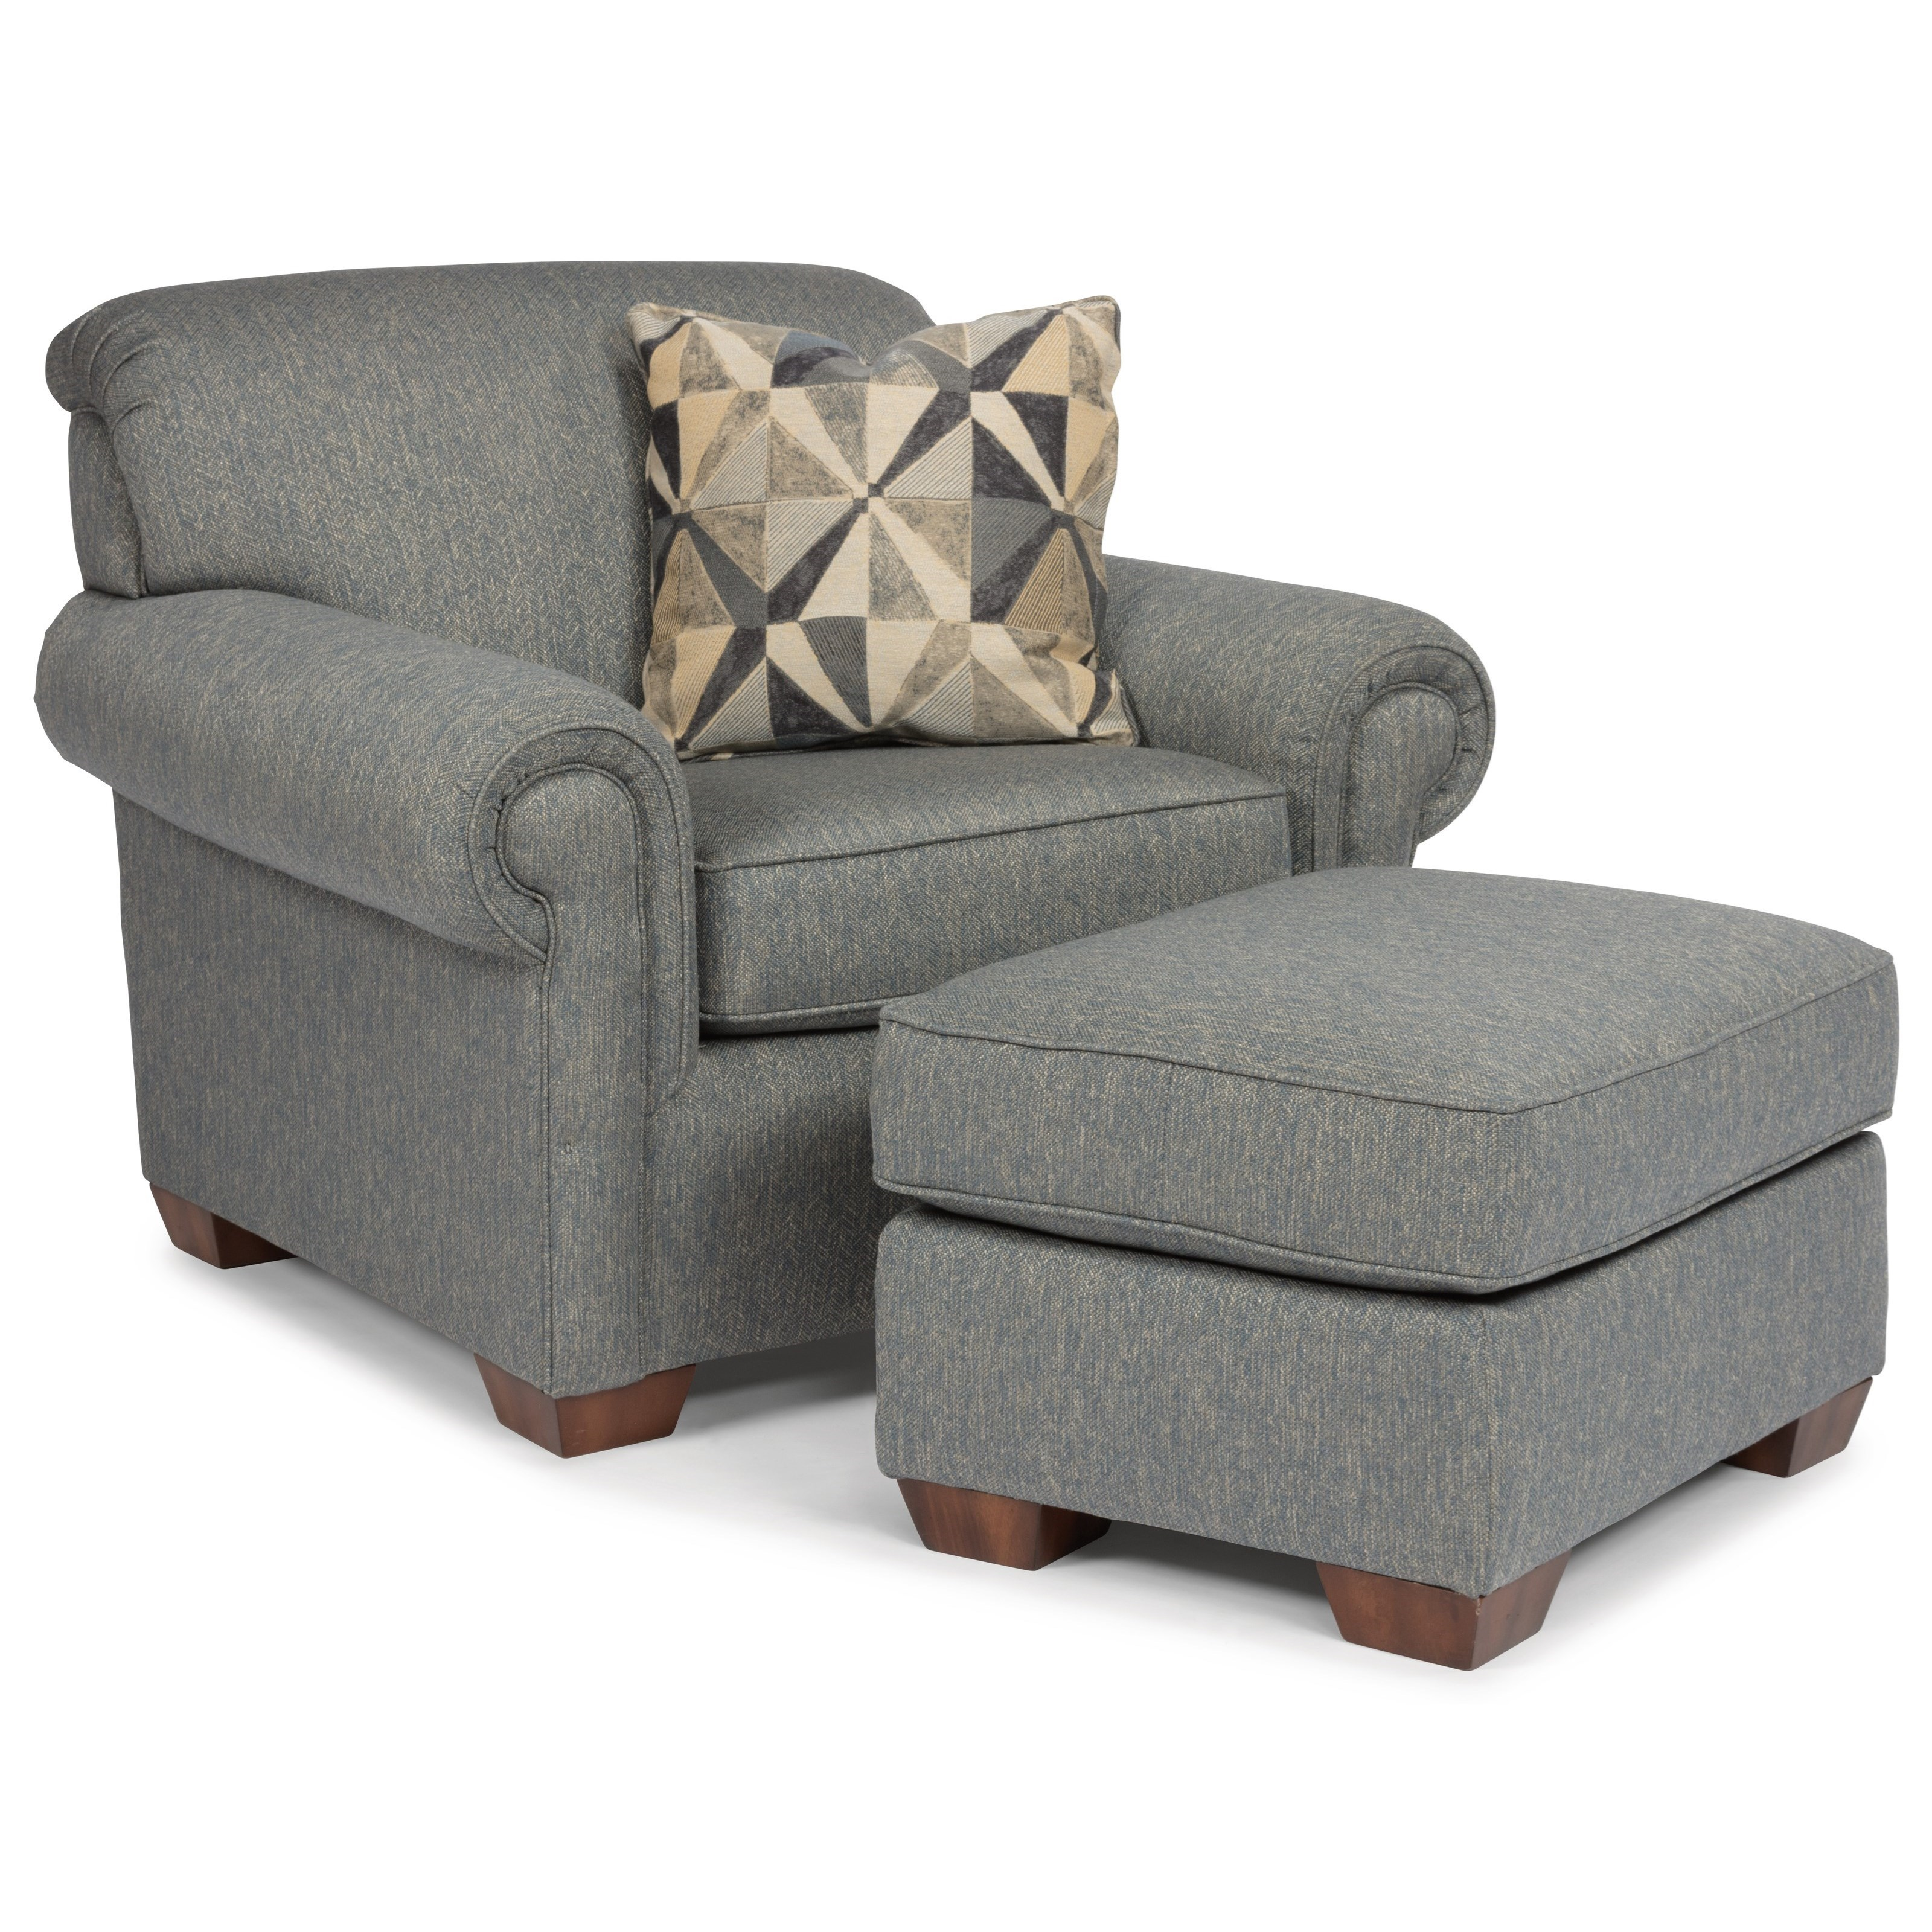 Main Street Chair and Ottoman by Flexsteel at Mueller Furniture